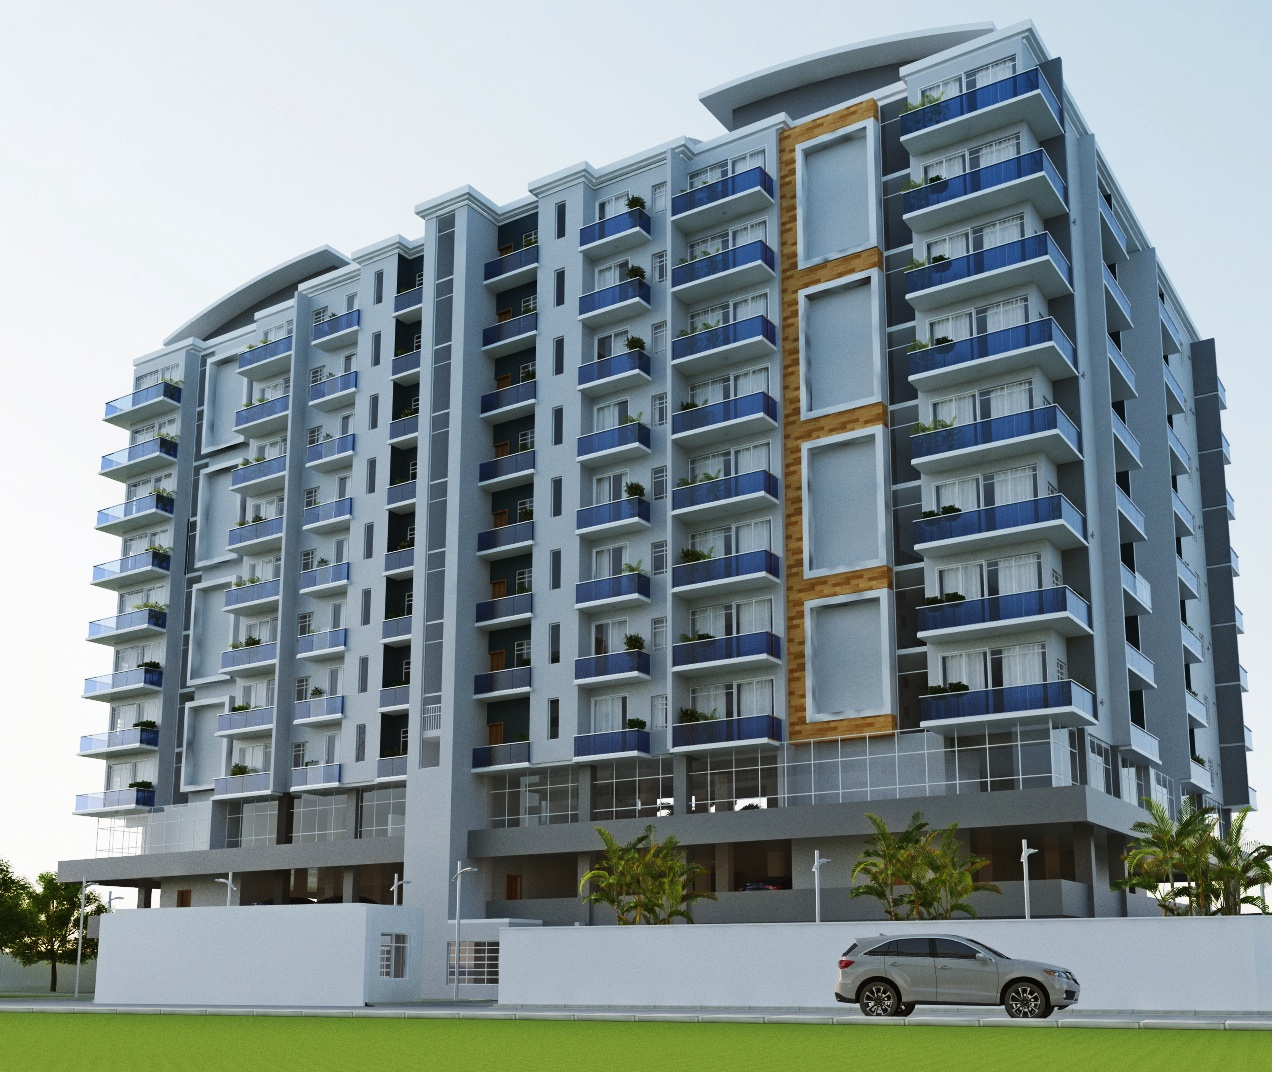 Luxurious Apartments: Deluxe Residences Introduces The Empire Super Luxury